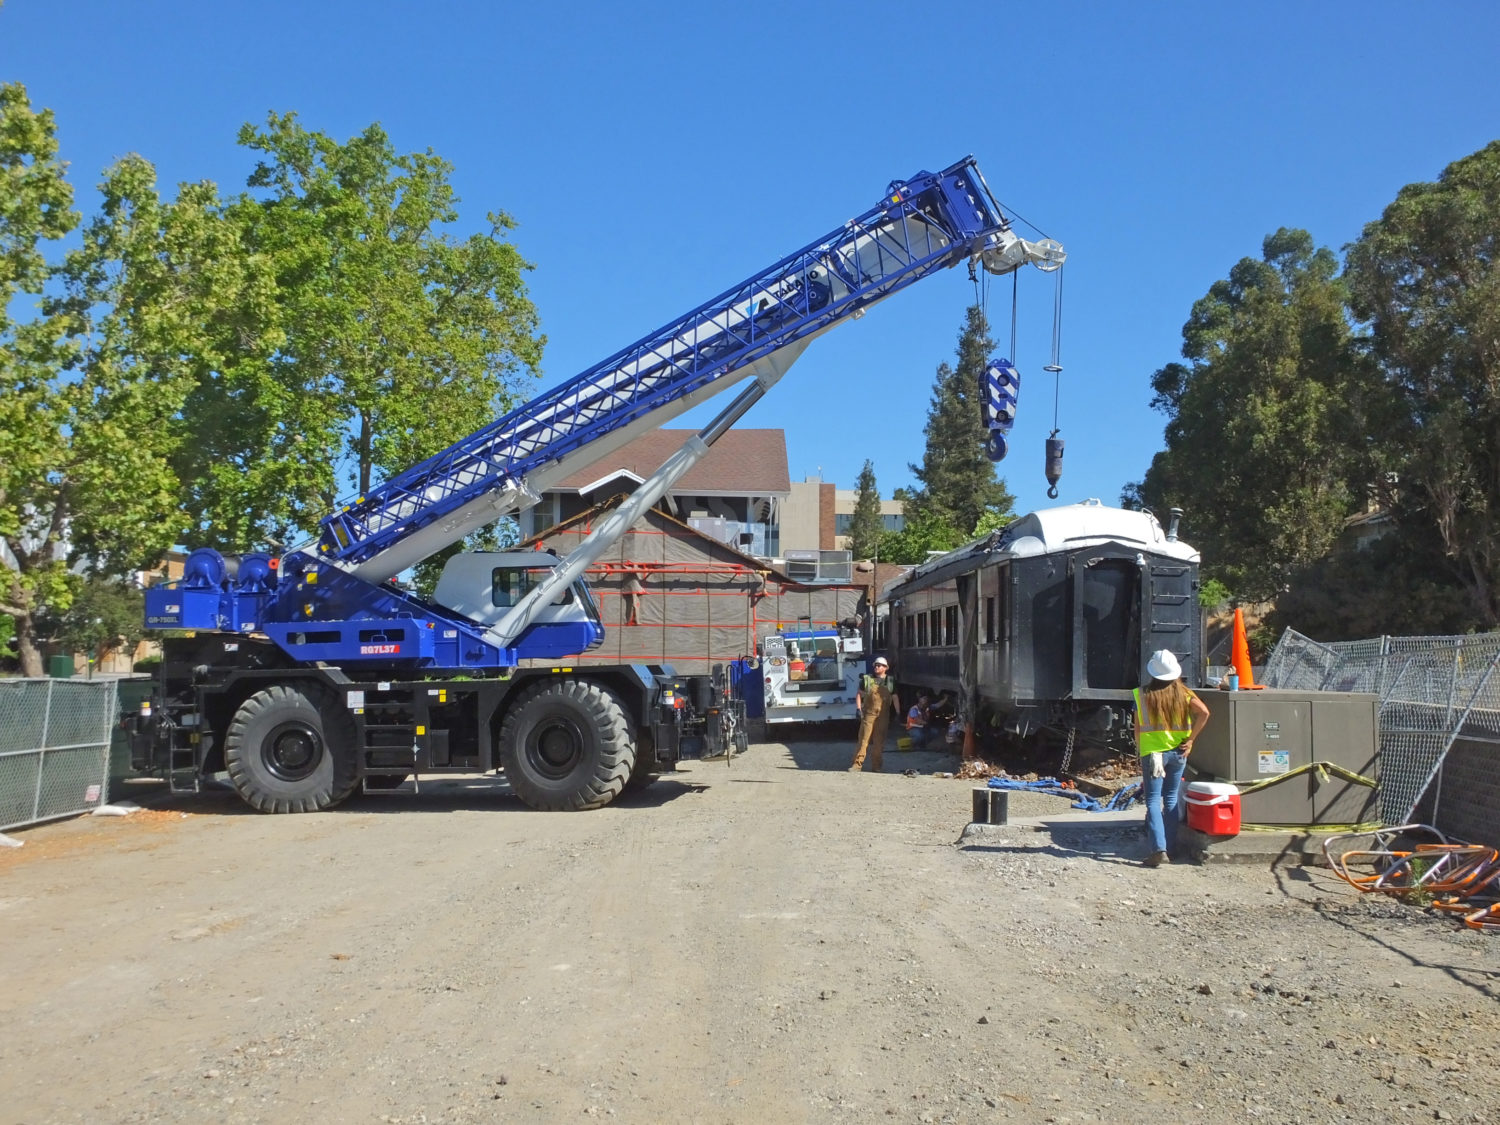 The 75 Ton Crane Prepares to Lift Front End of Car to Remove the 3-axle Truck